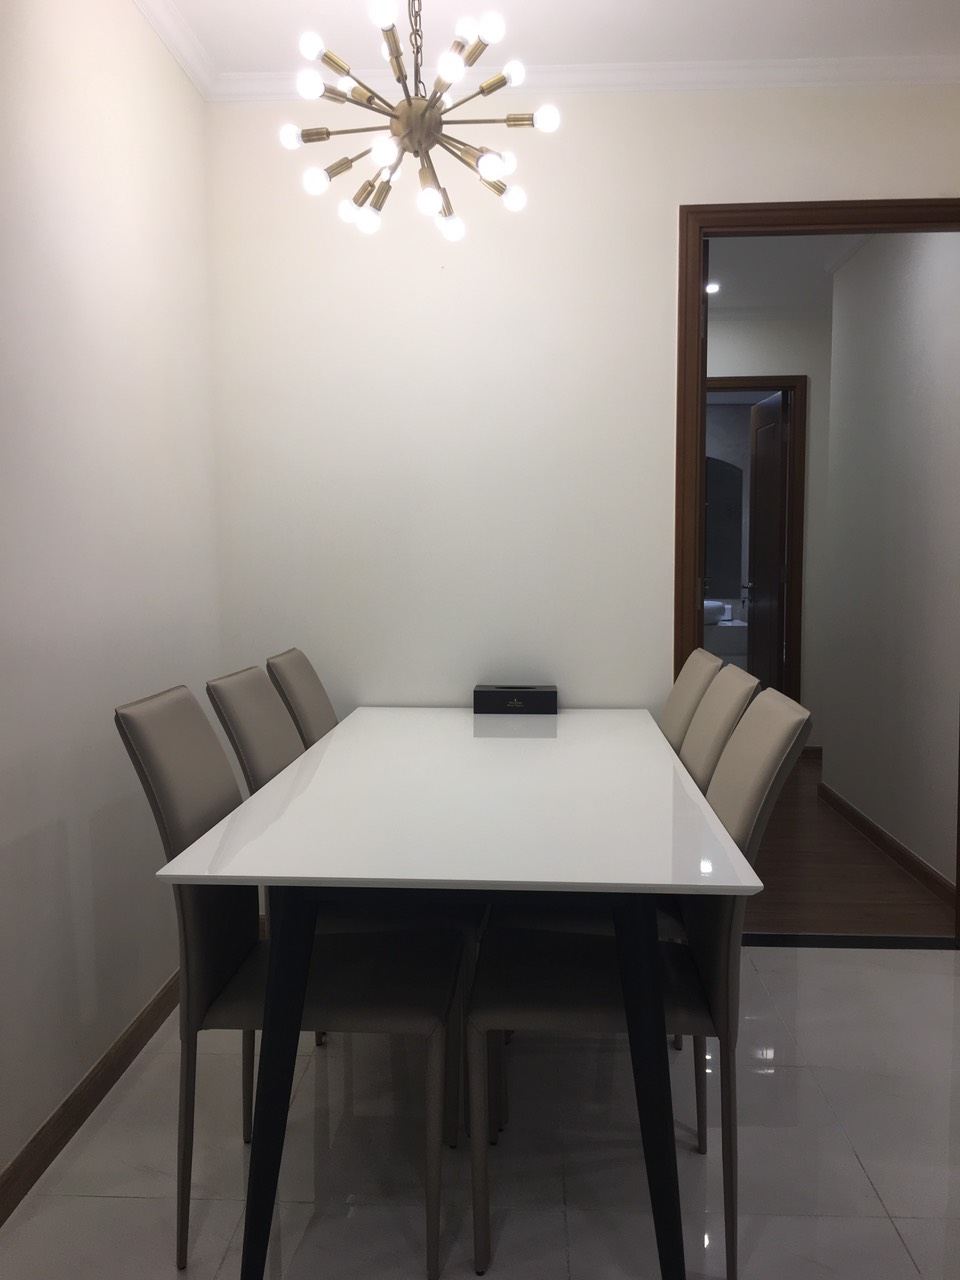 vinhomes central park apartment for rent in binh thanh district hcmc BT105L1497(8)